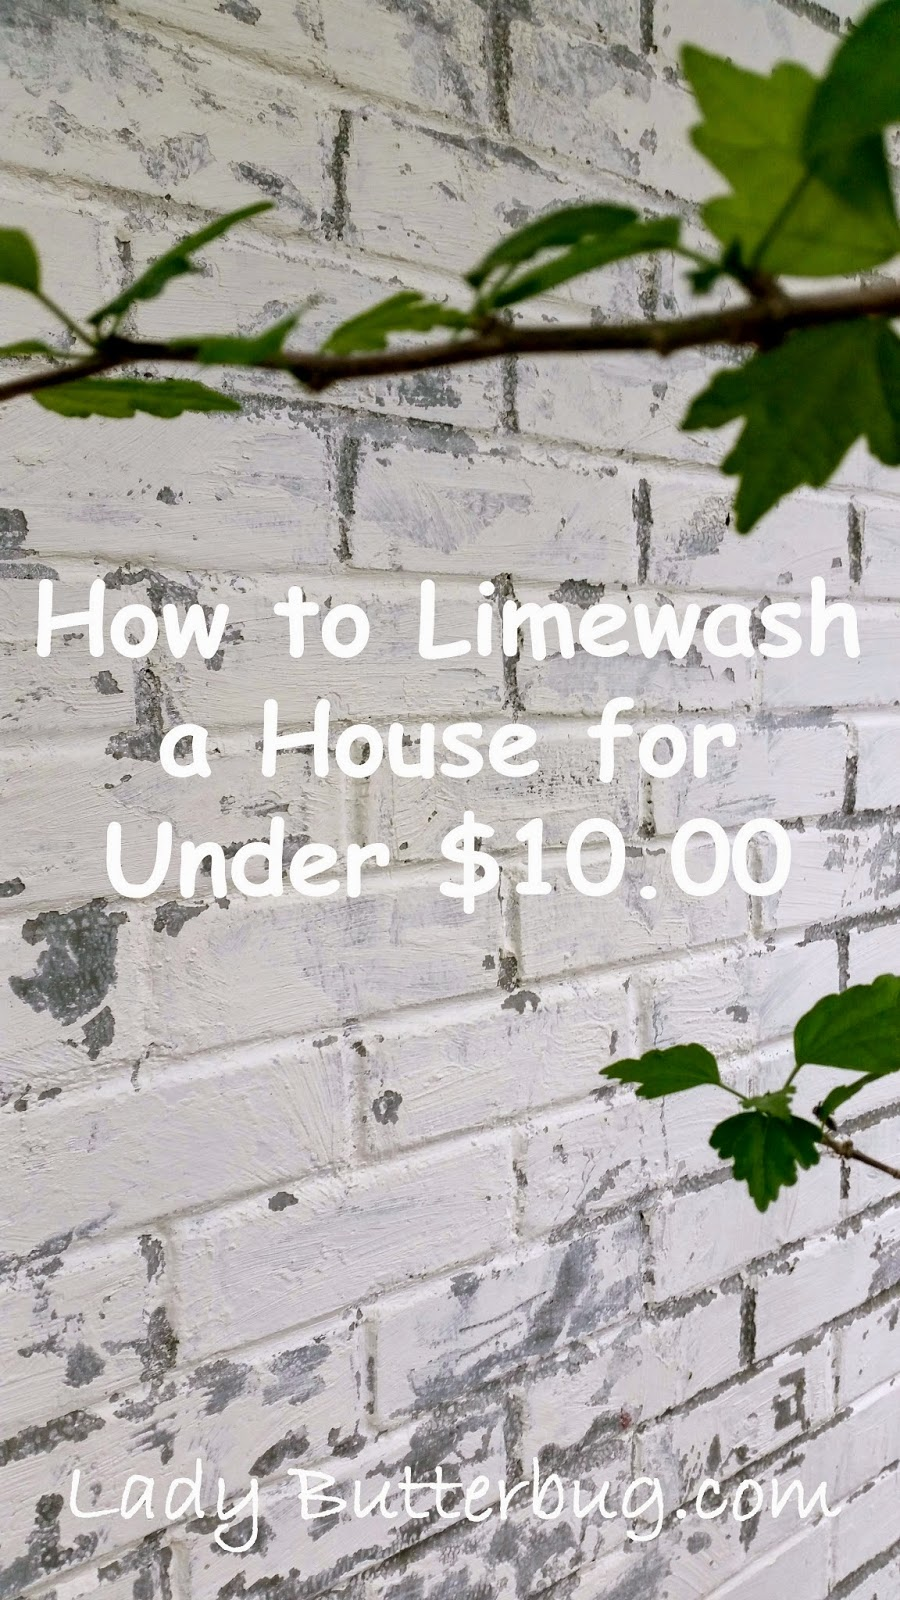 Lime Wash For Less Than $10.00